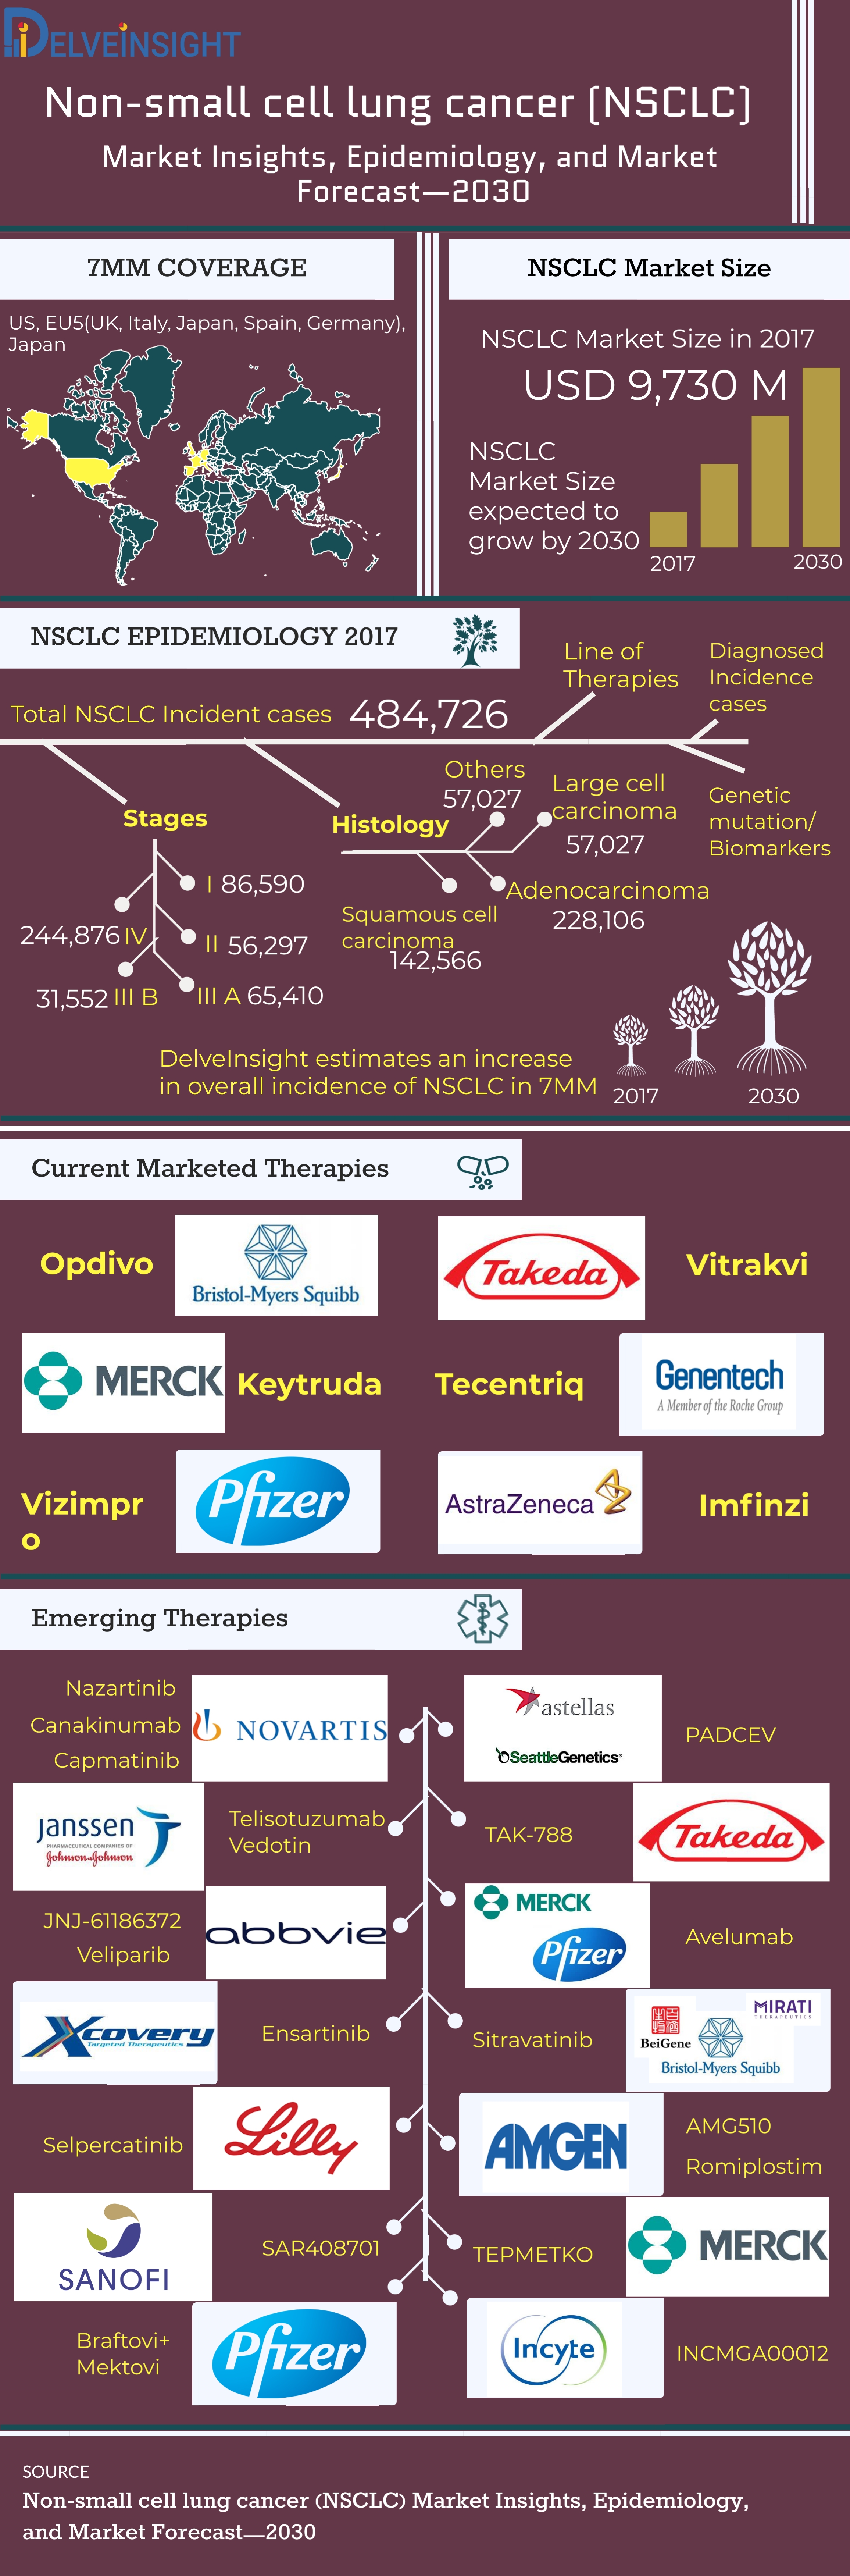 Non-Small Cell Lung Cancer Global API Manufacturers, and Late-stage products